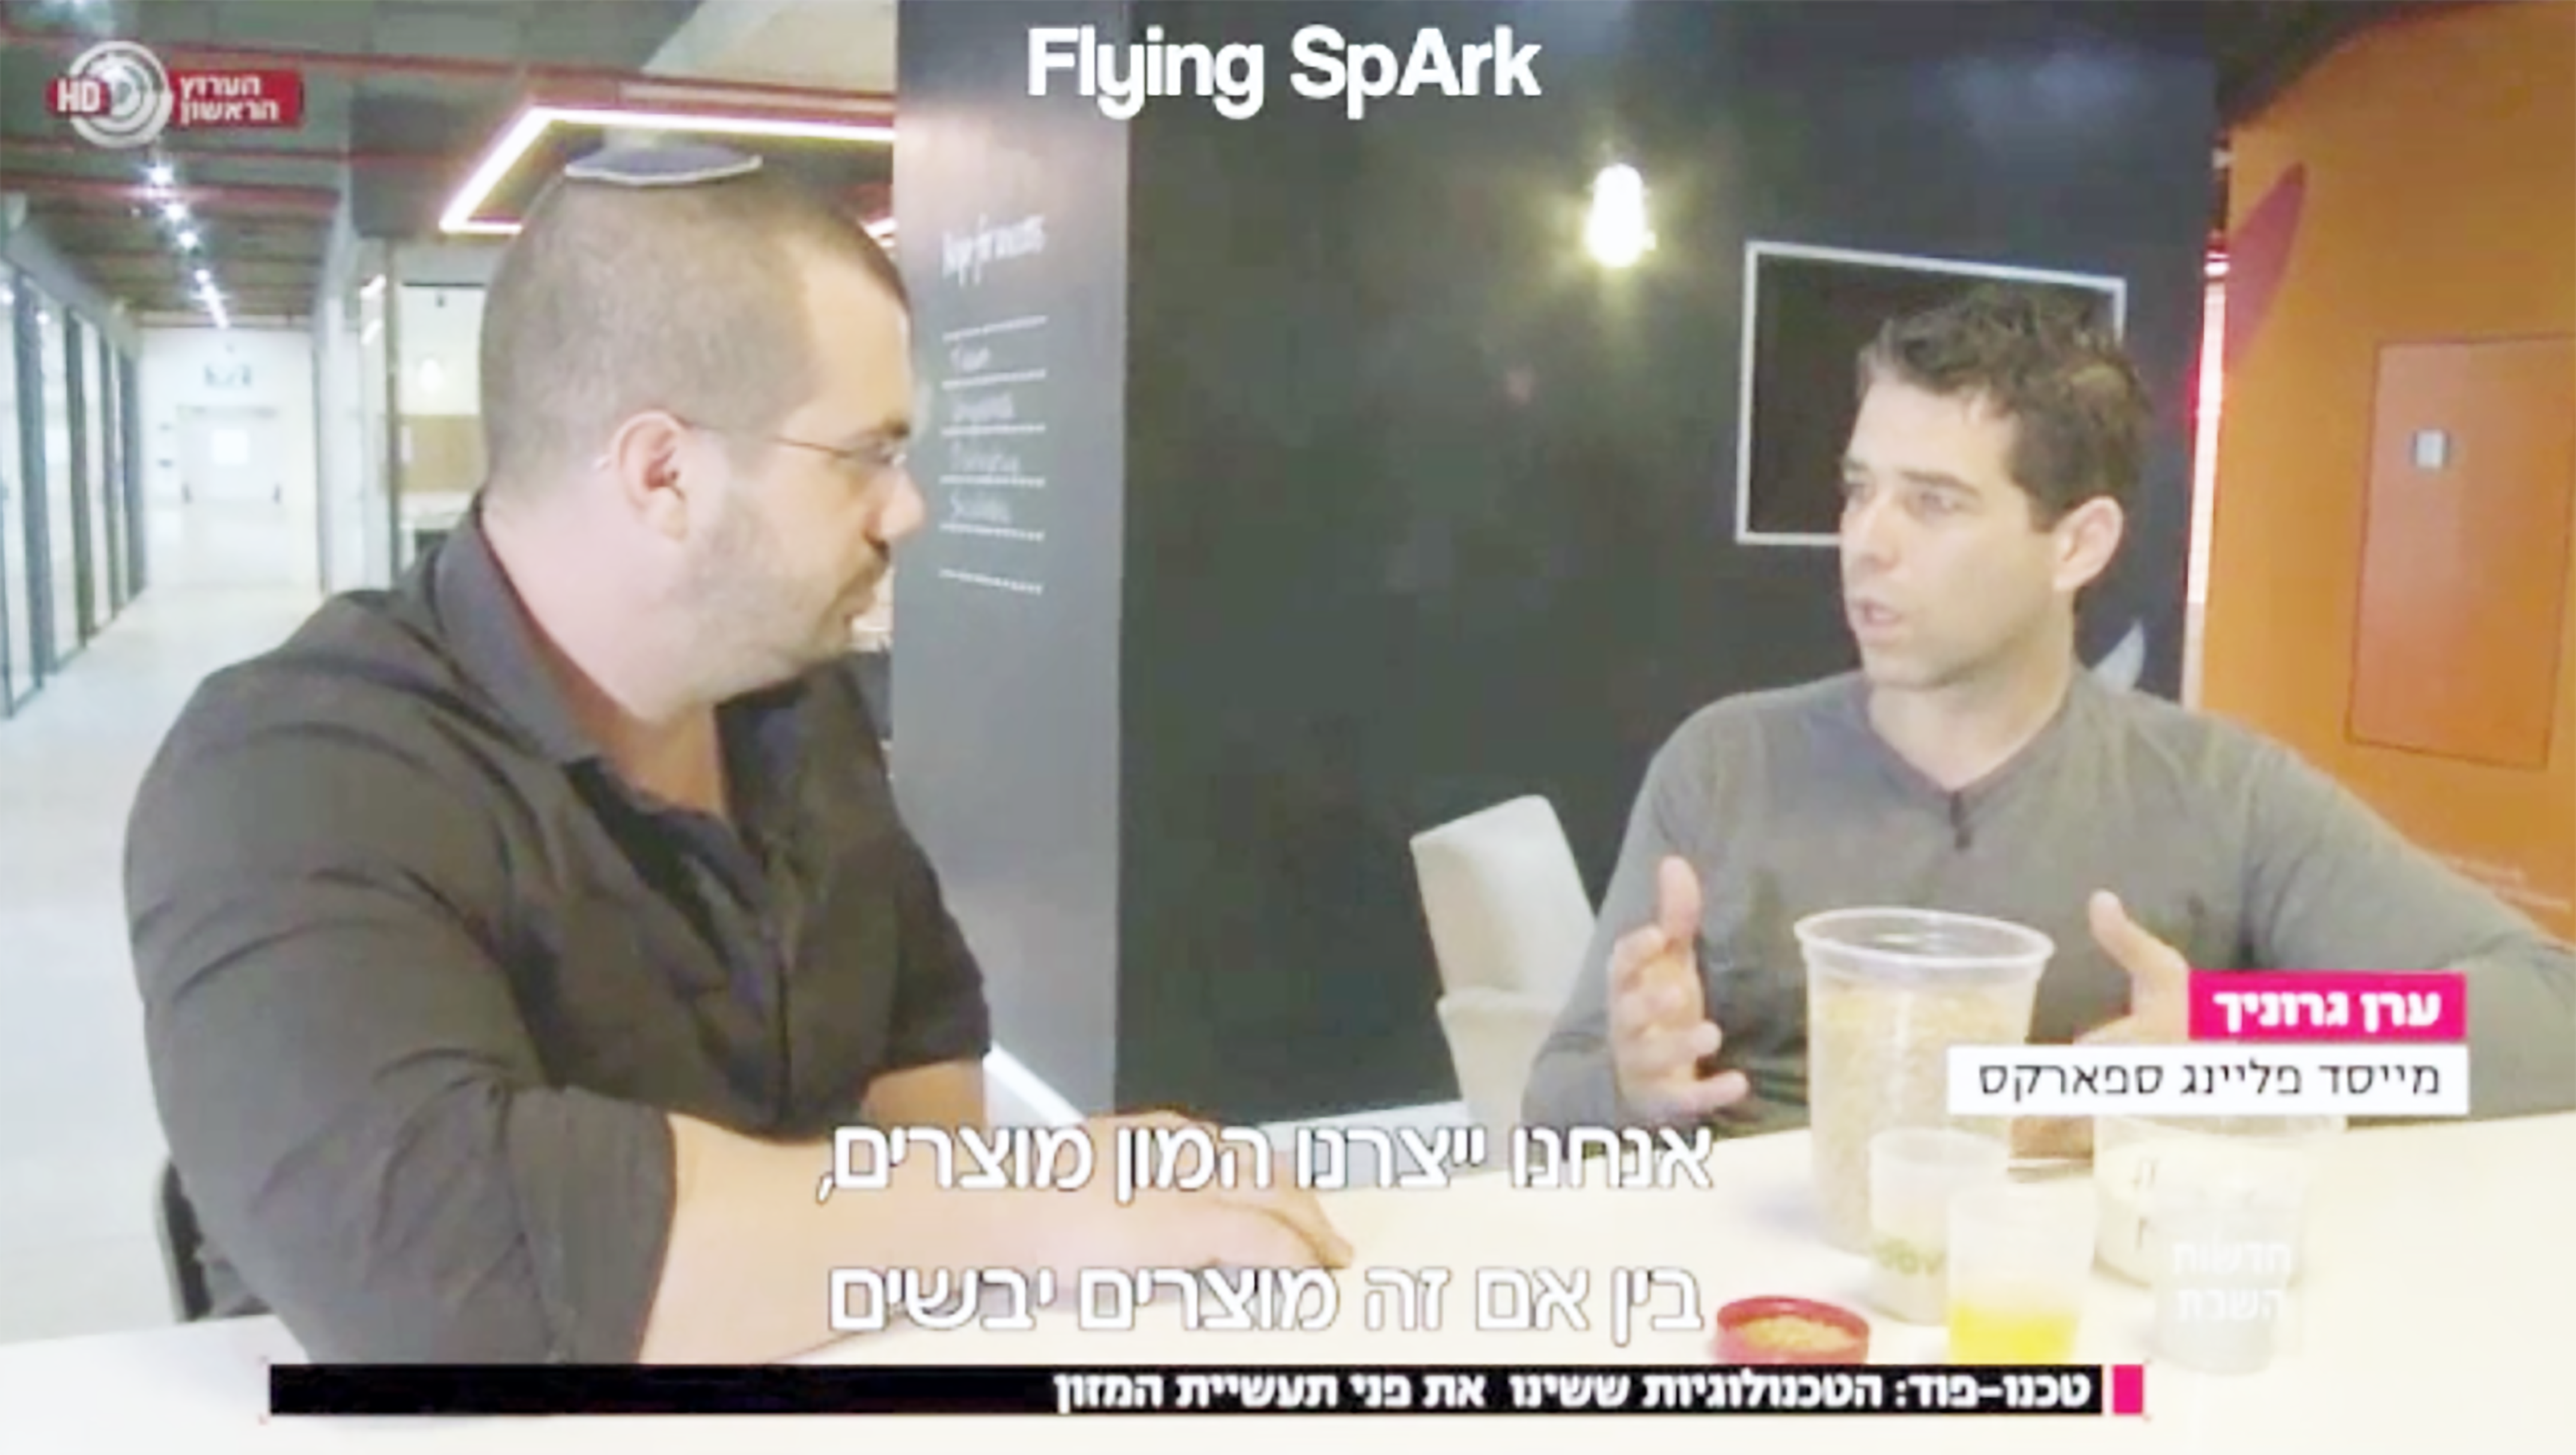 Flying SpArk in the News